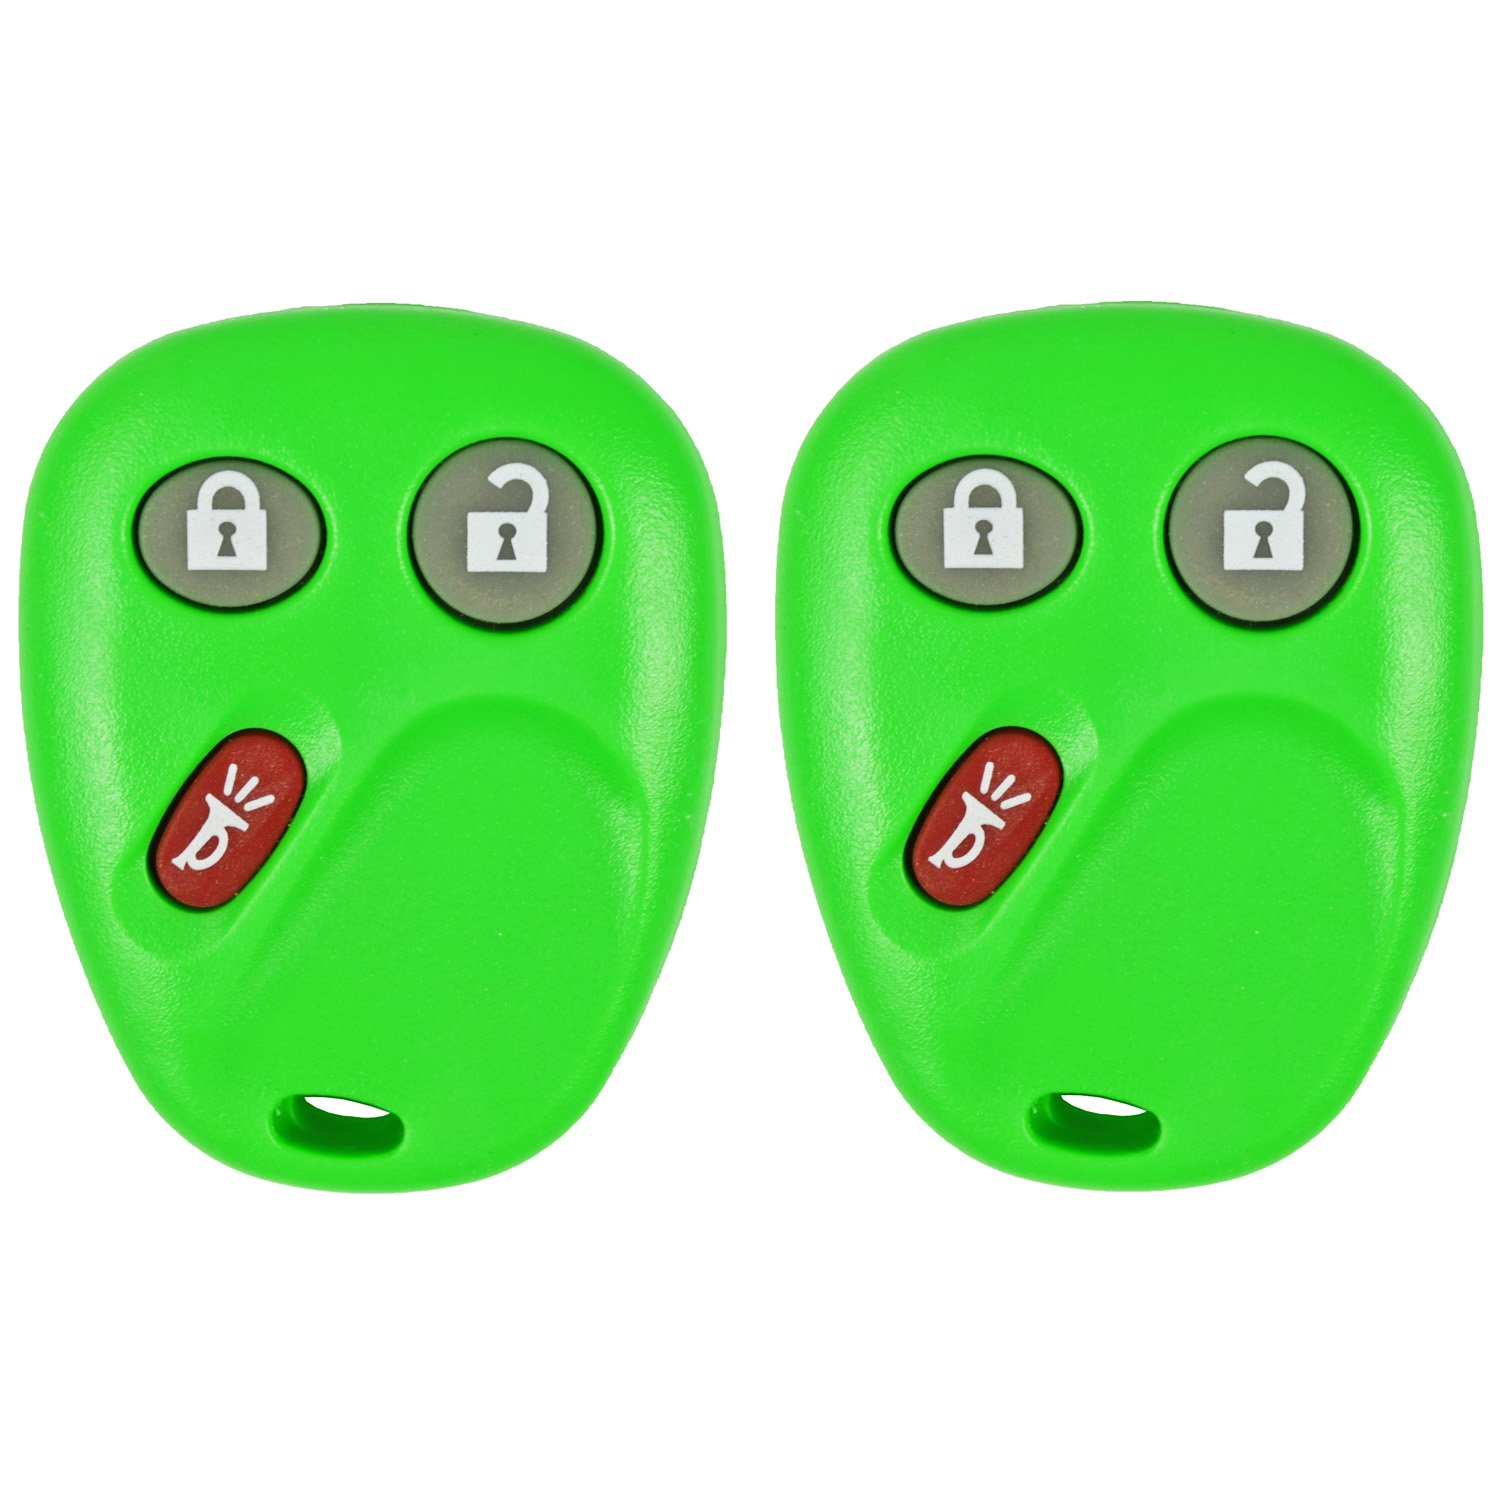 QualityKeylessPlus Remote Replacement 3 Button Keyless Entry FCC ID LHJ011 FREE KEYTAG 2 Green